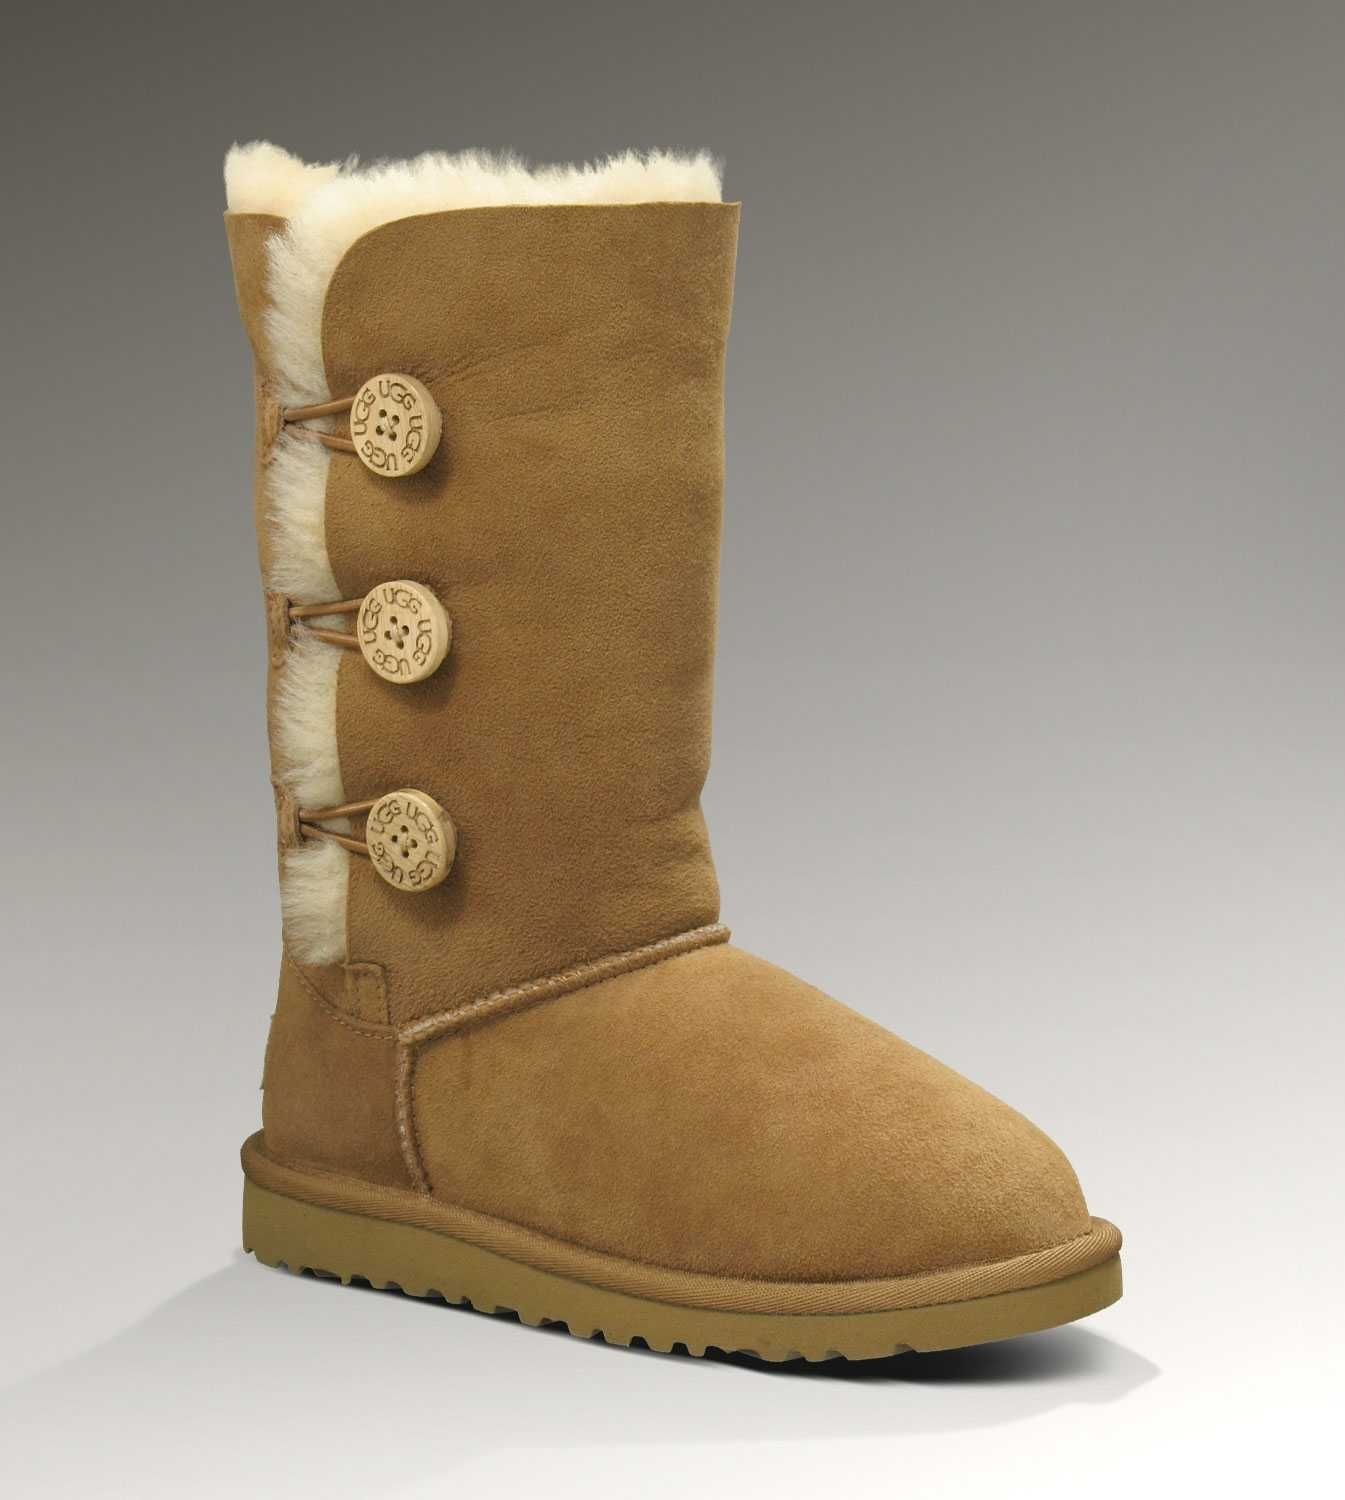 Cheap Uggs Bailey Button Triplet 1962 Boots For Kids [UGG UK 060] - $95.00